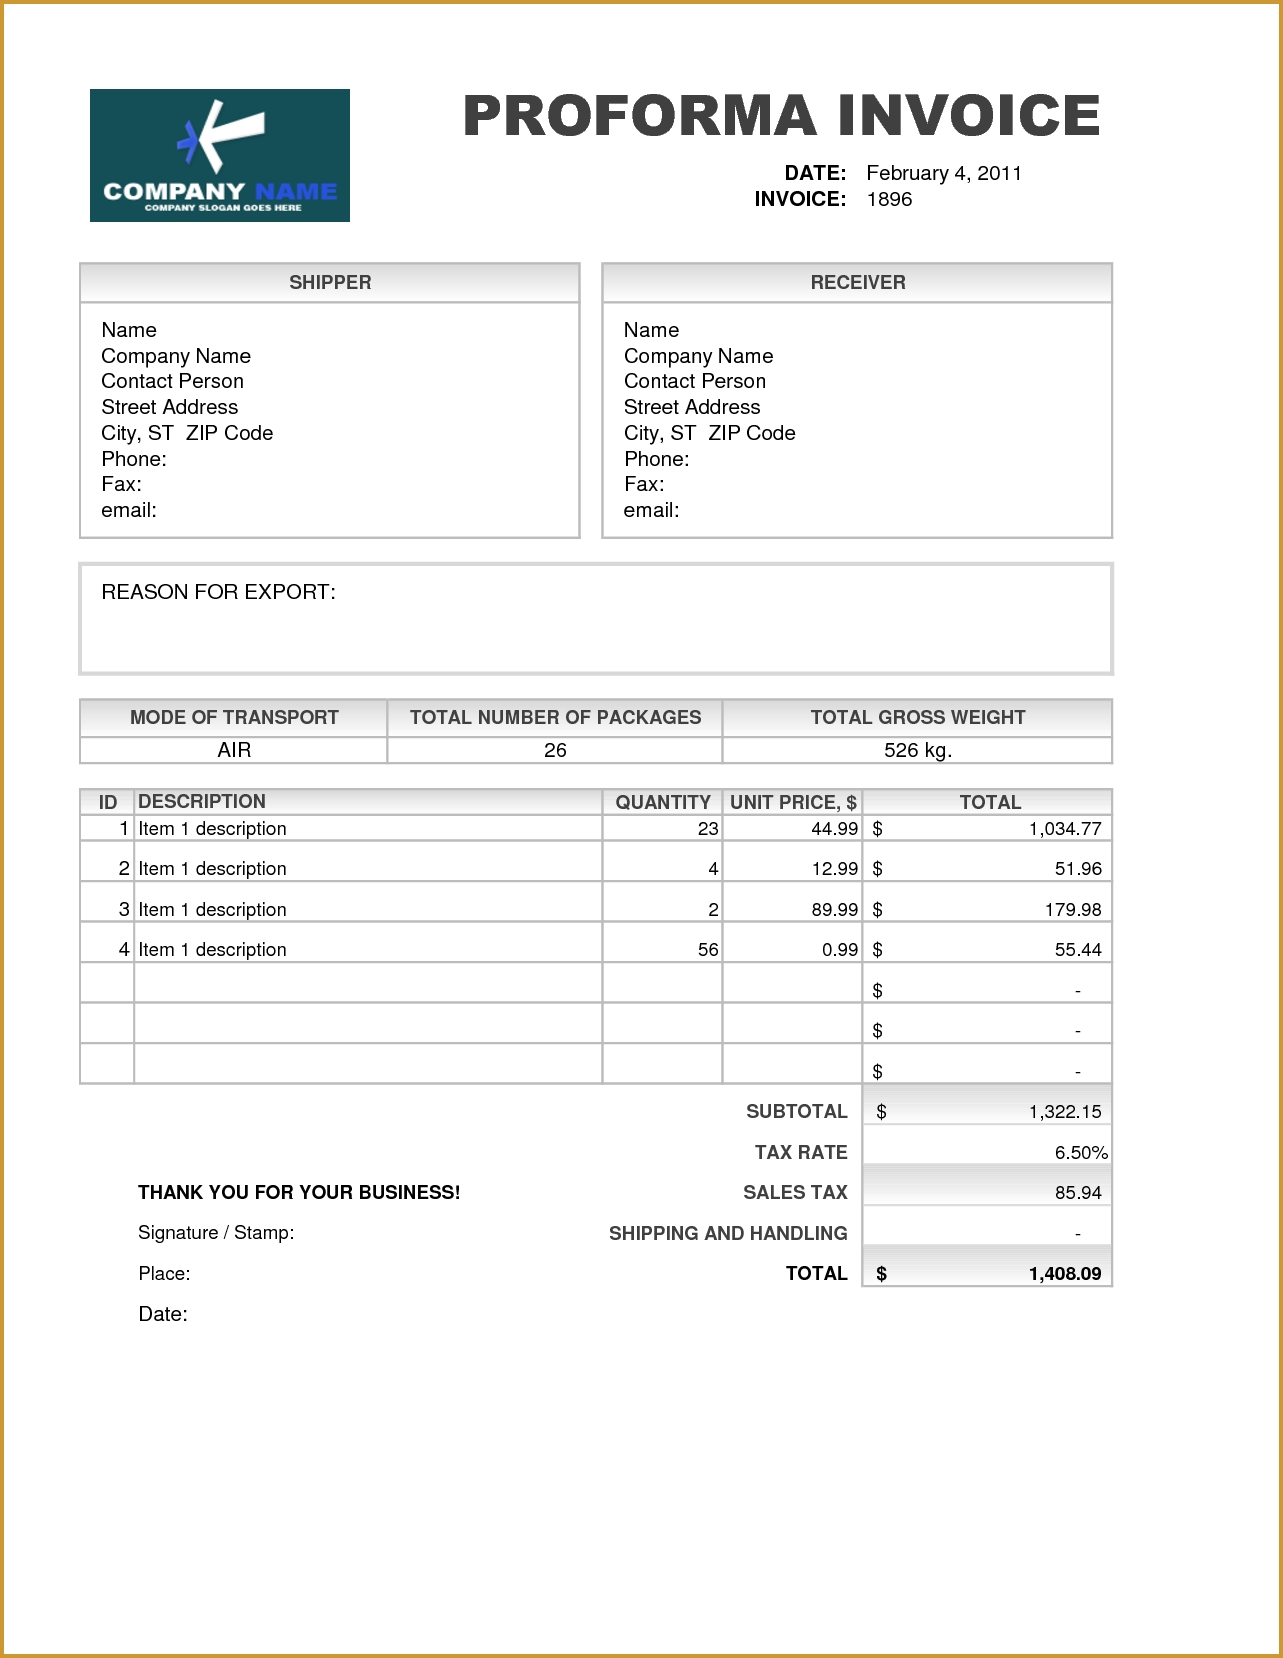 proforma invoice excel template invoice template ideas 13 samples and the importance of proforma invoice template excel proforma invoice excel template